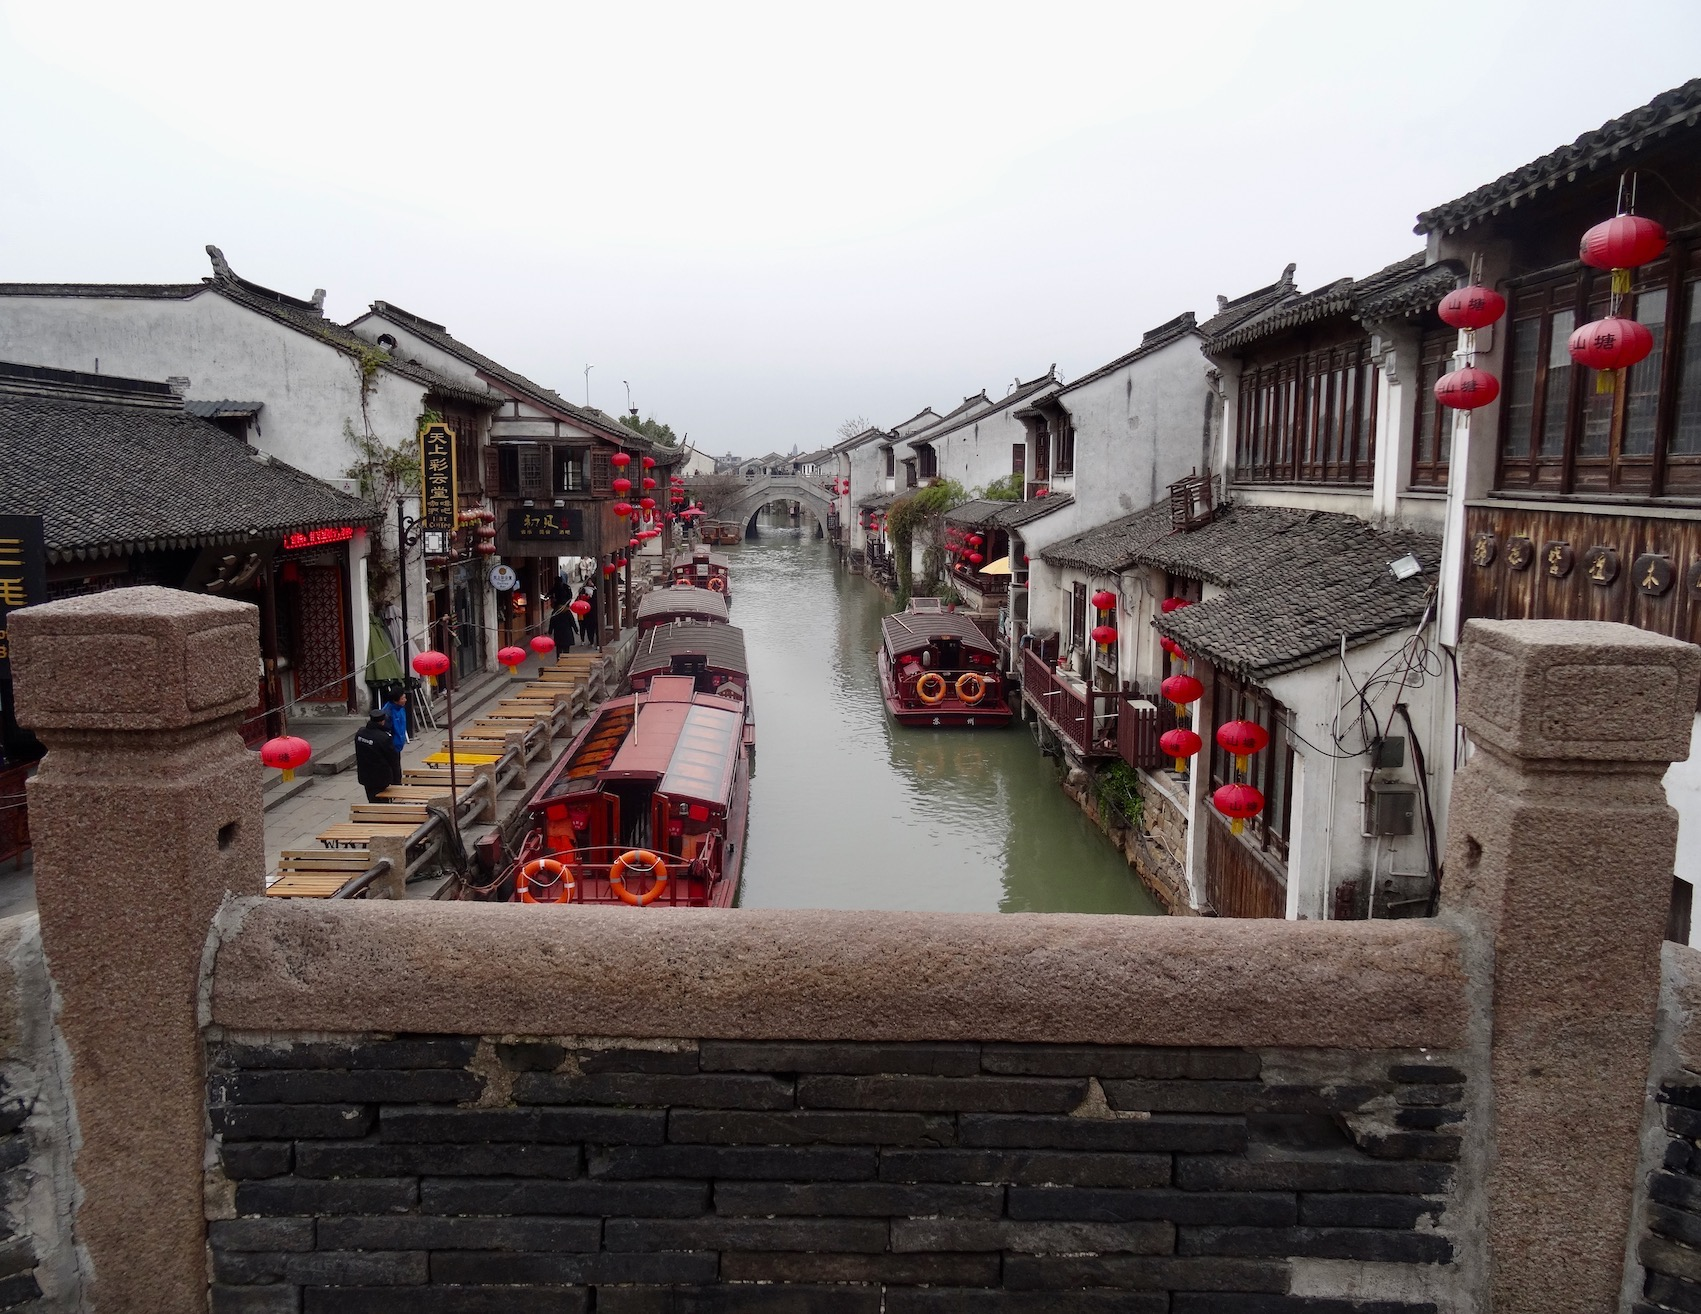 Tonggui Bridge Shantang Street Suzhou Jiangsu Province China